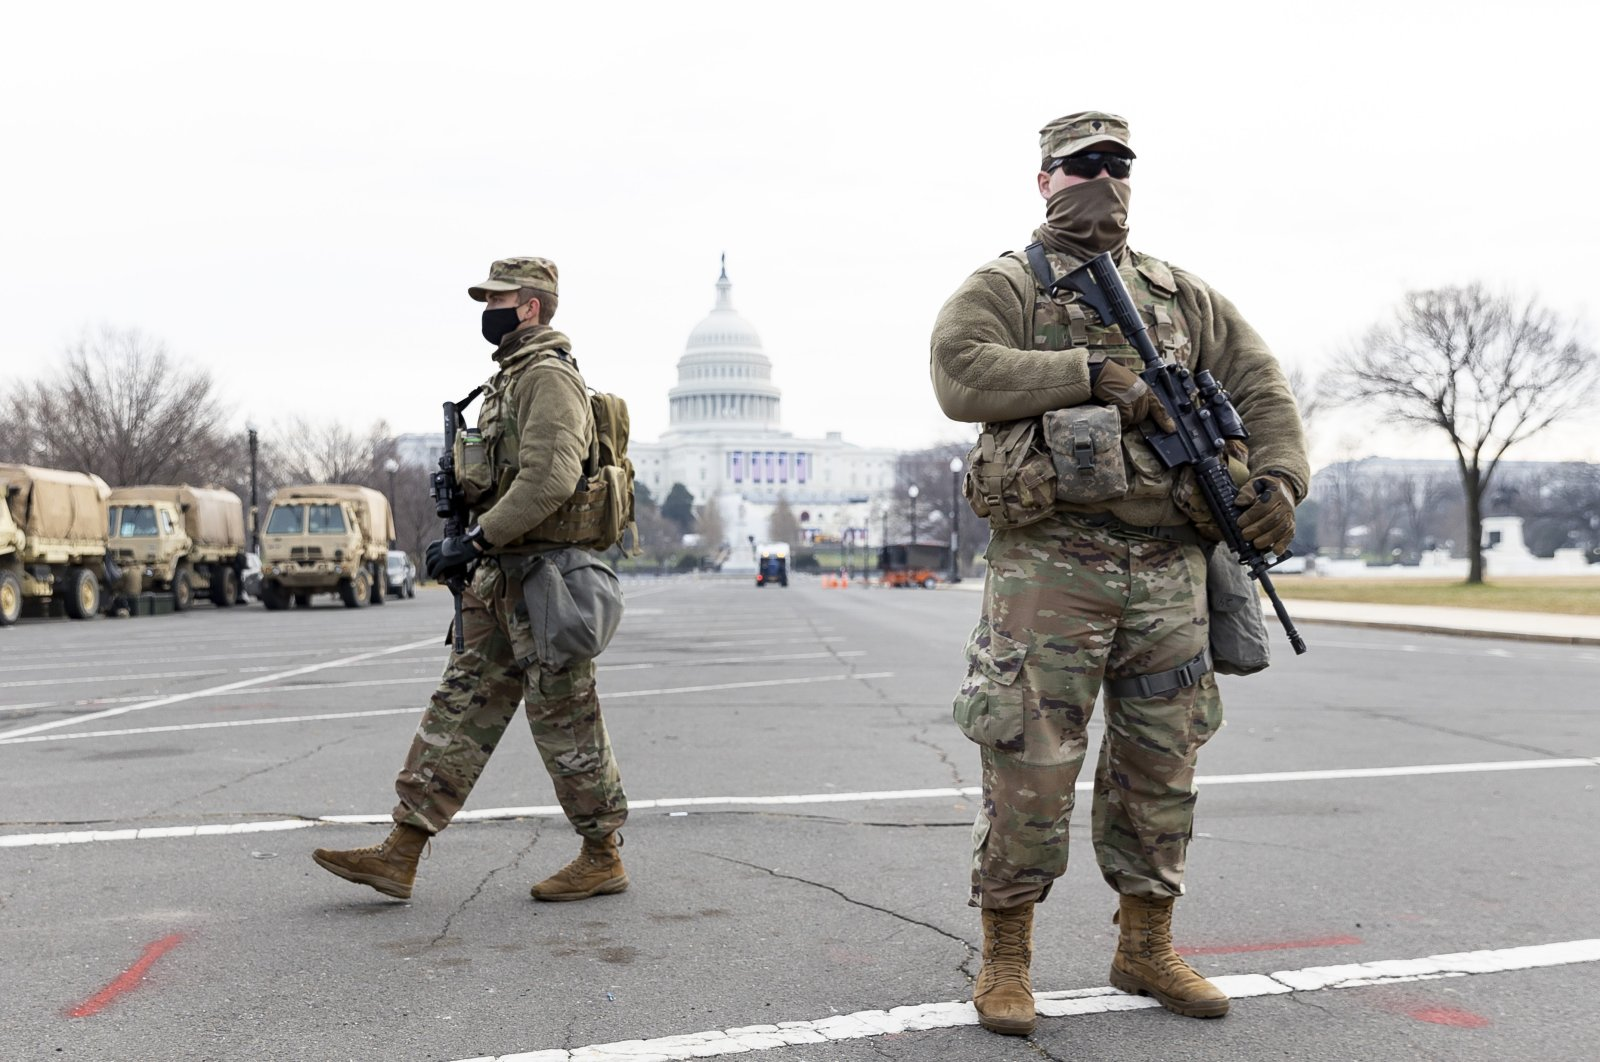 National Guard soldiers stand guard on the grounds around the US Capitol building in Washington, DC, USA, 14 January 2021. (EPA Photo)